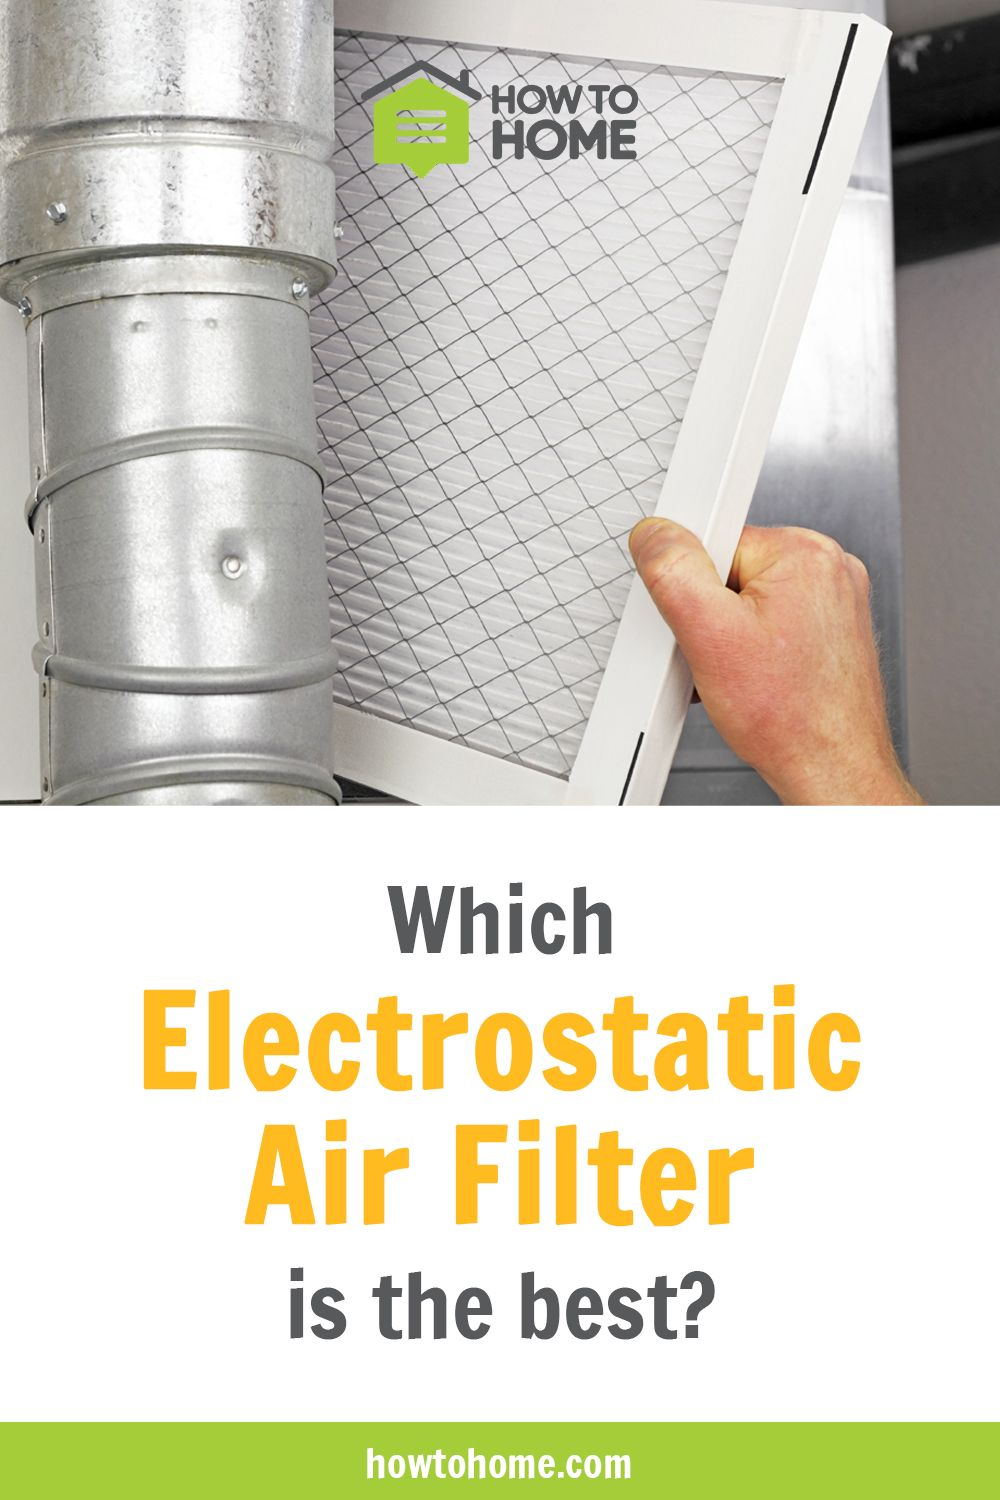 Electrostatic air filters filter your air much more